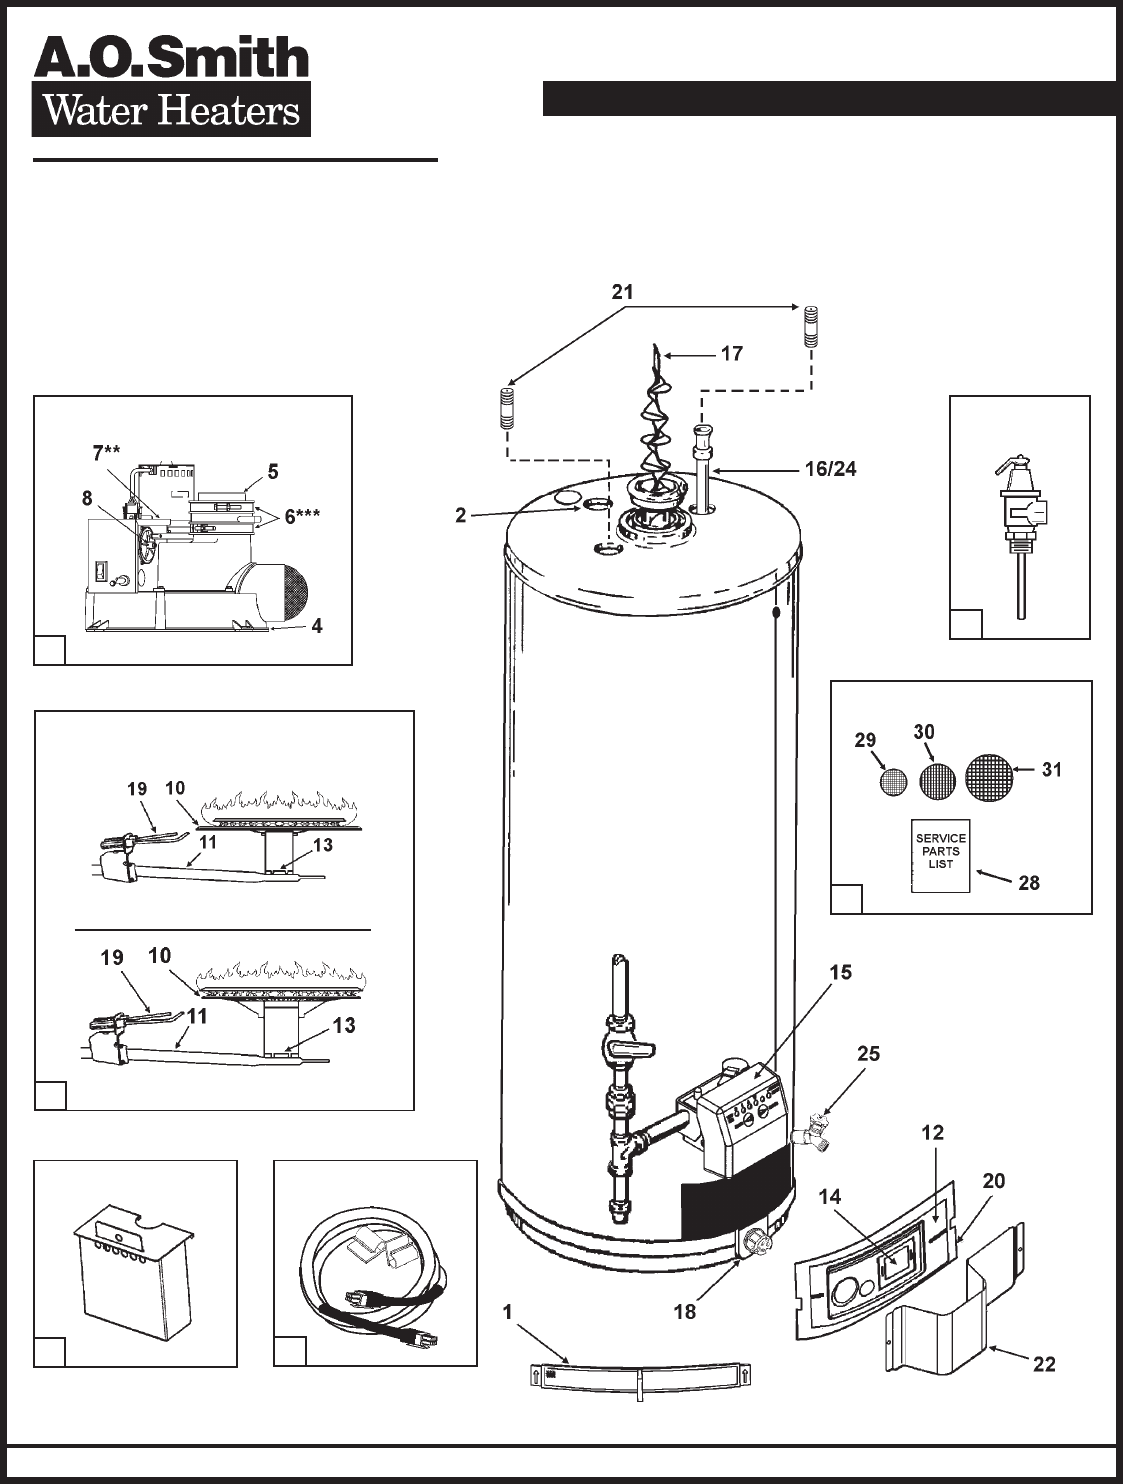 ao smith parts diagram